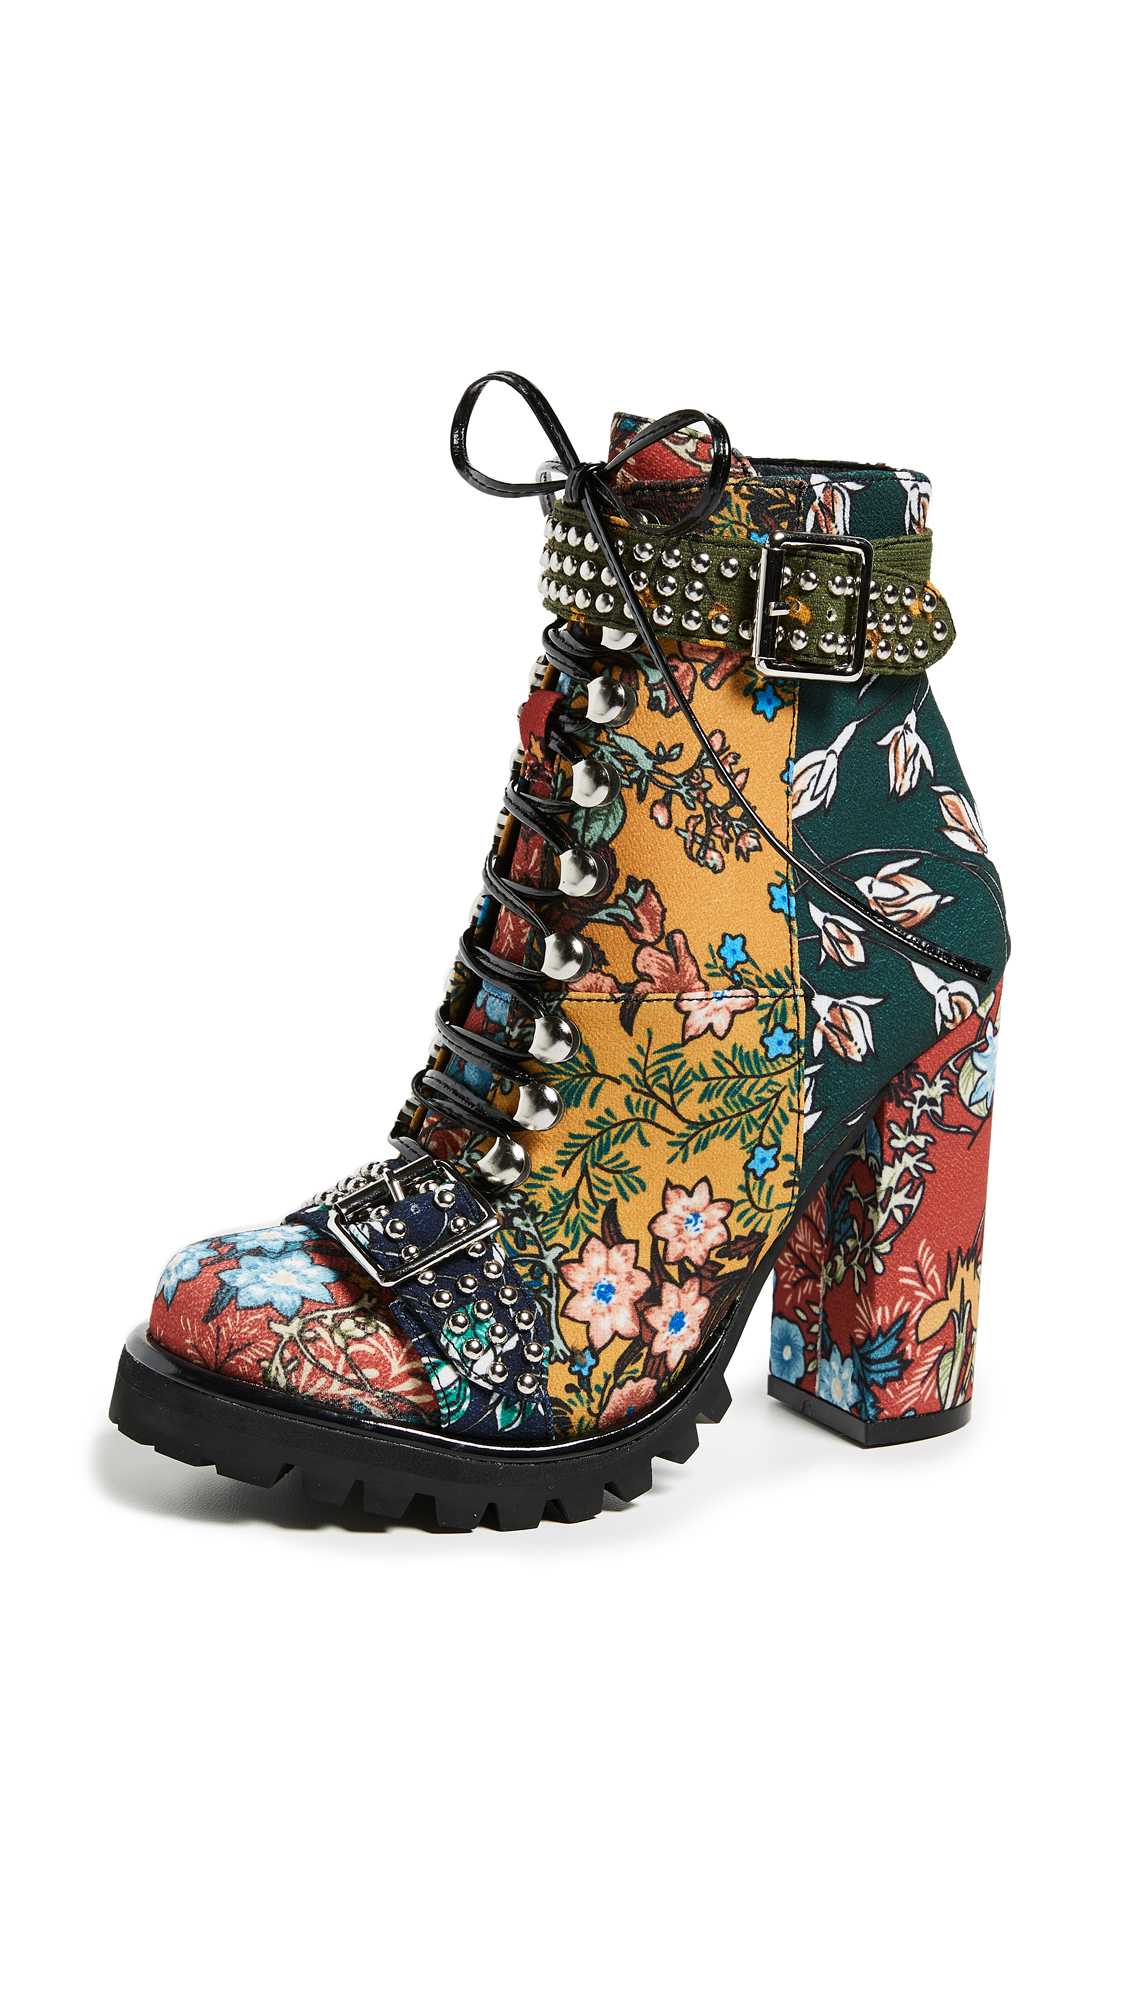 Jeffrey Campbell Lilith 2 Boots - New Floral